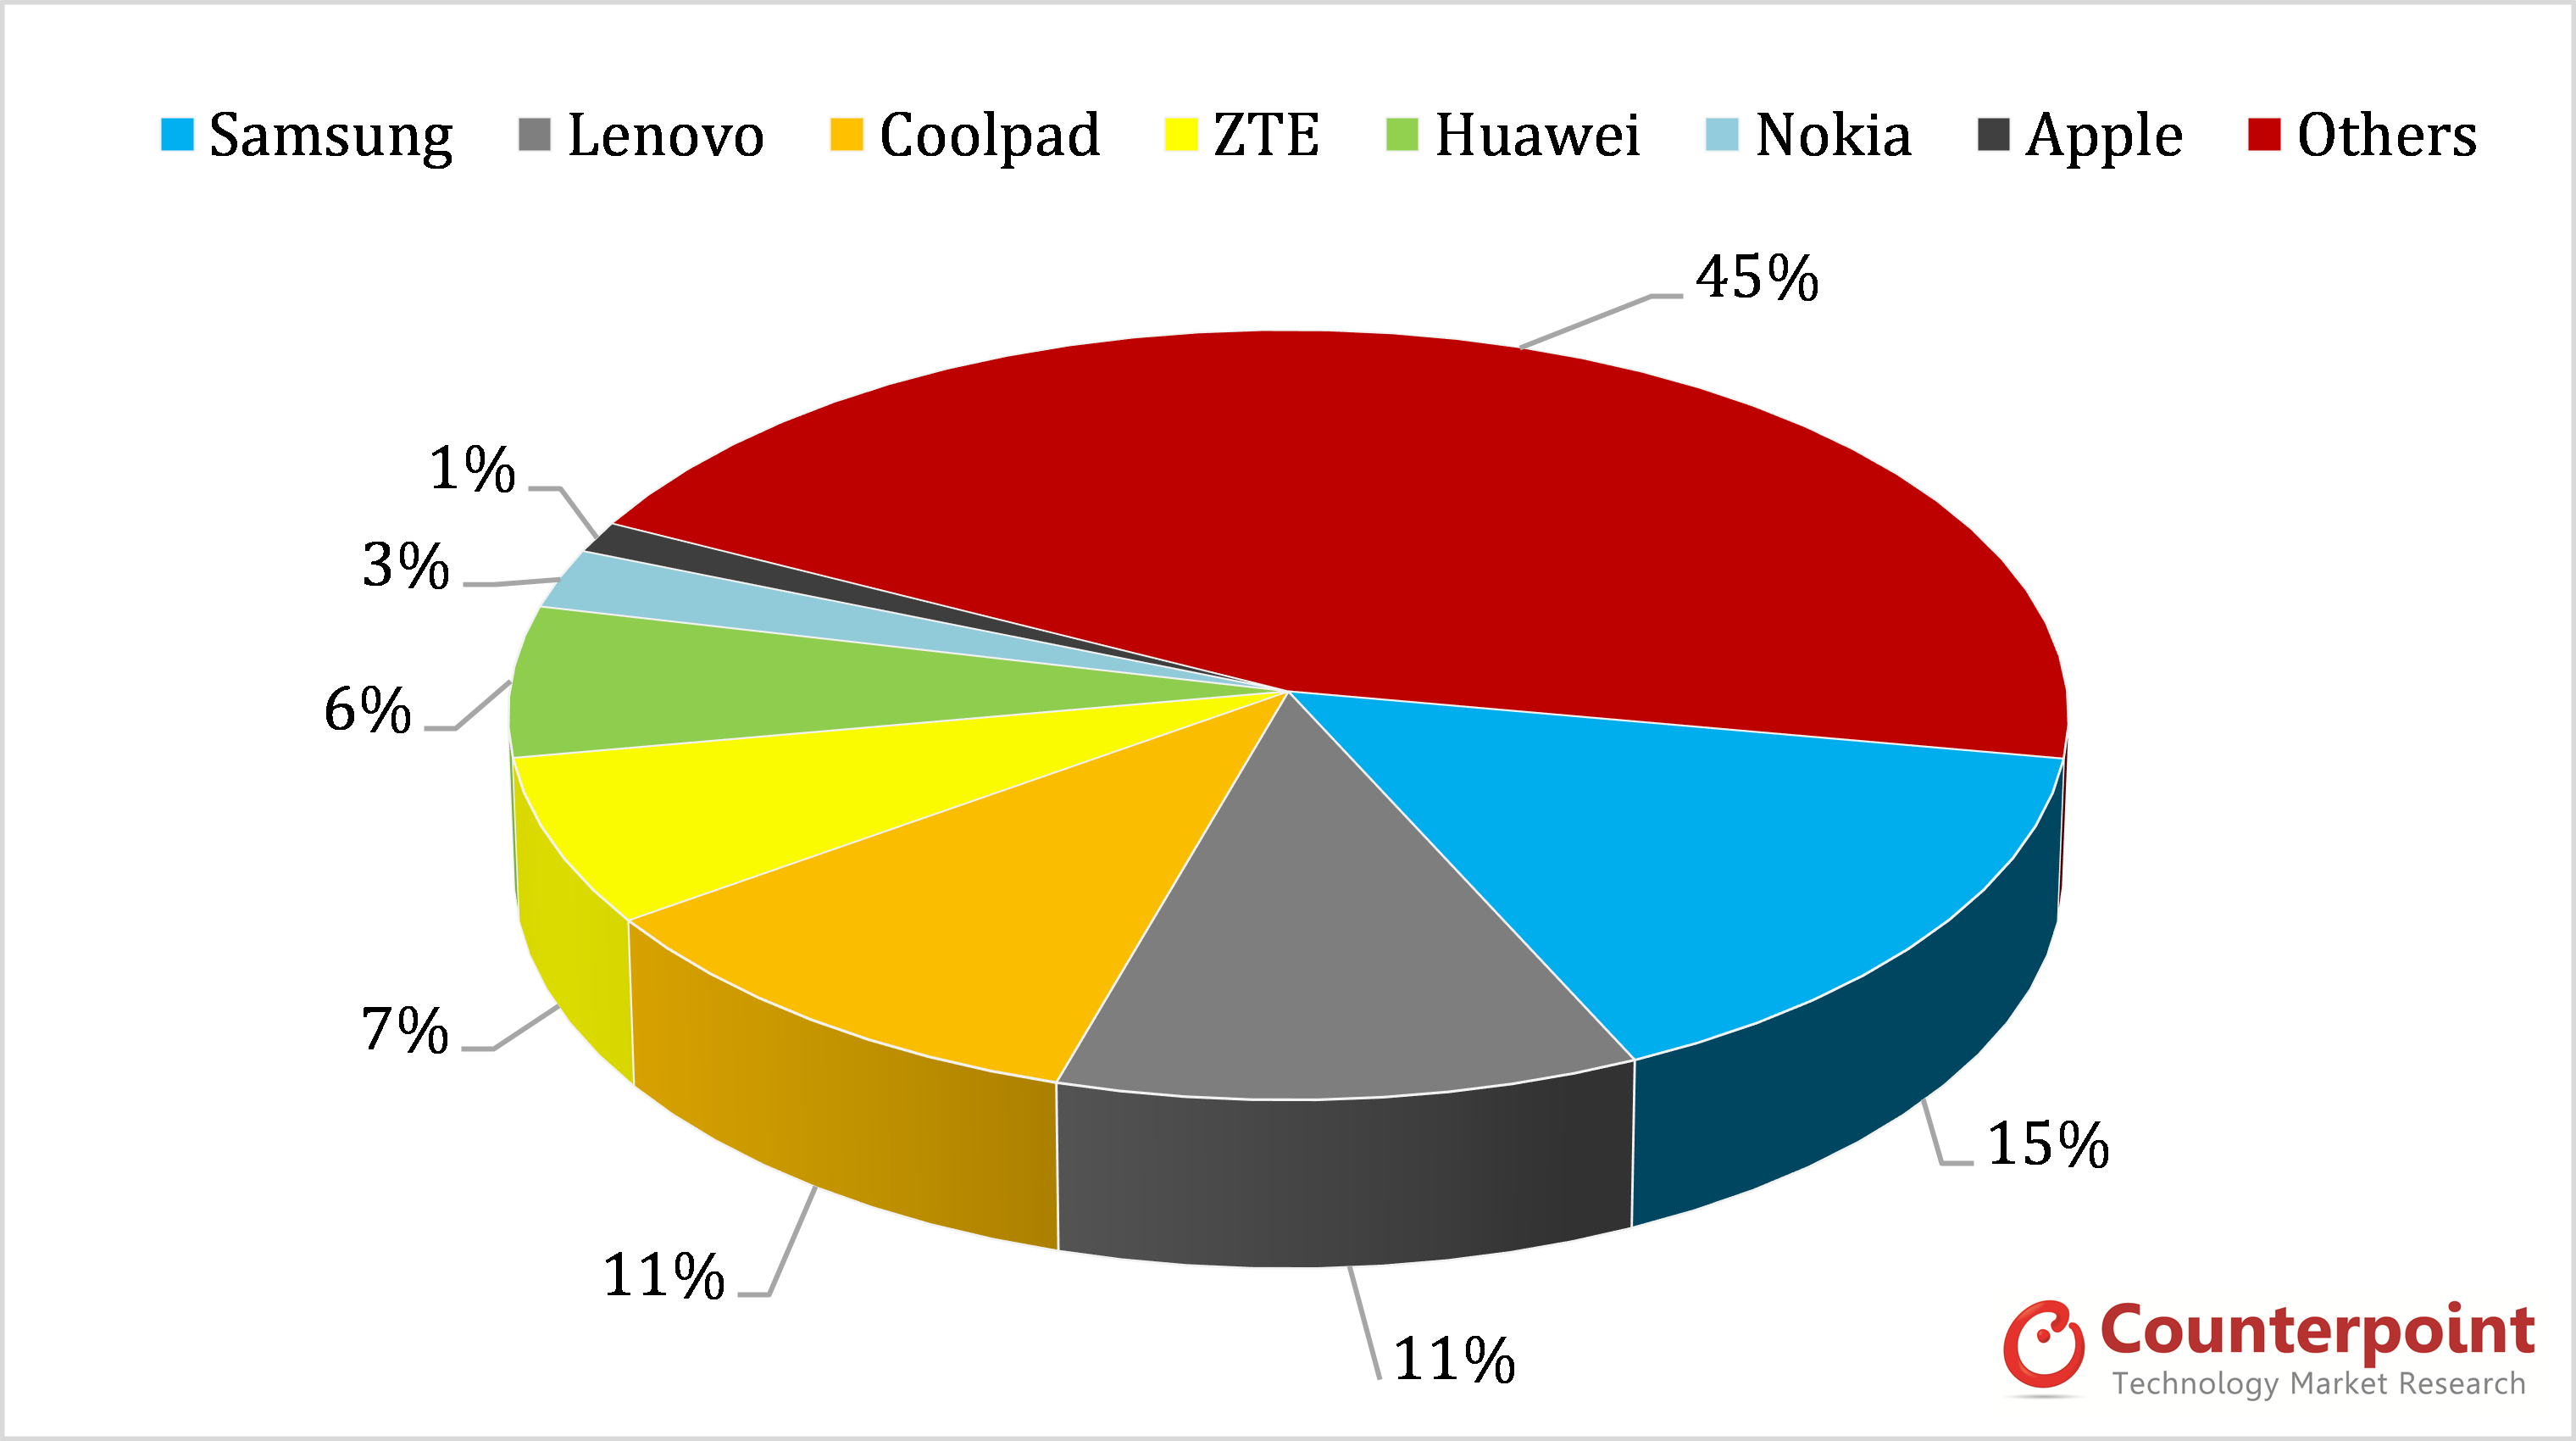 China Monthly Market Pulse OEM Smartphone Share August 2013